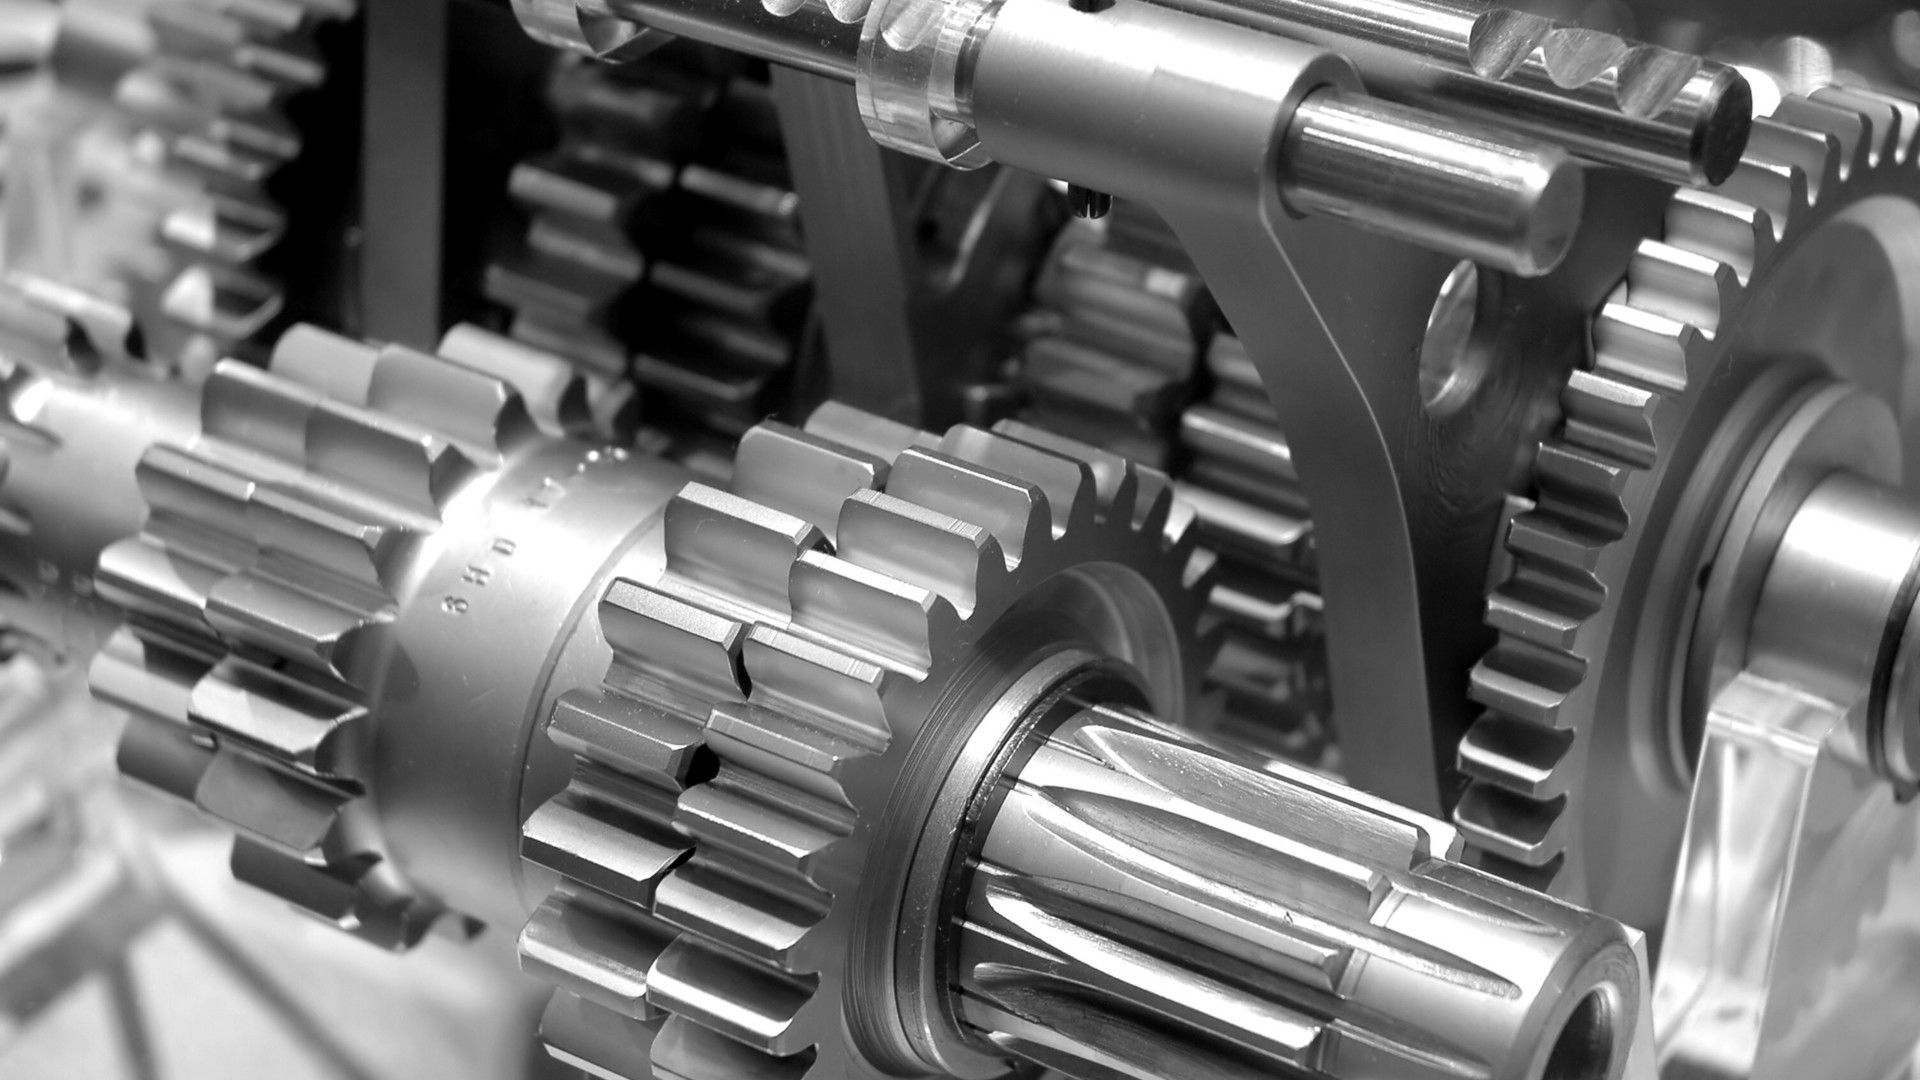 1920x1080 The Coolest Engineering Wallpapers To Spruce Up Your Desktop Mechanical Engineering Mechanic Engineering